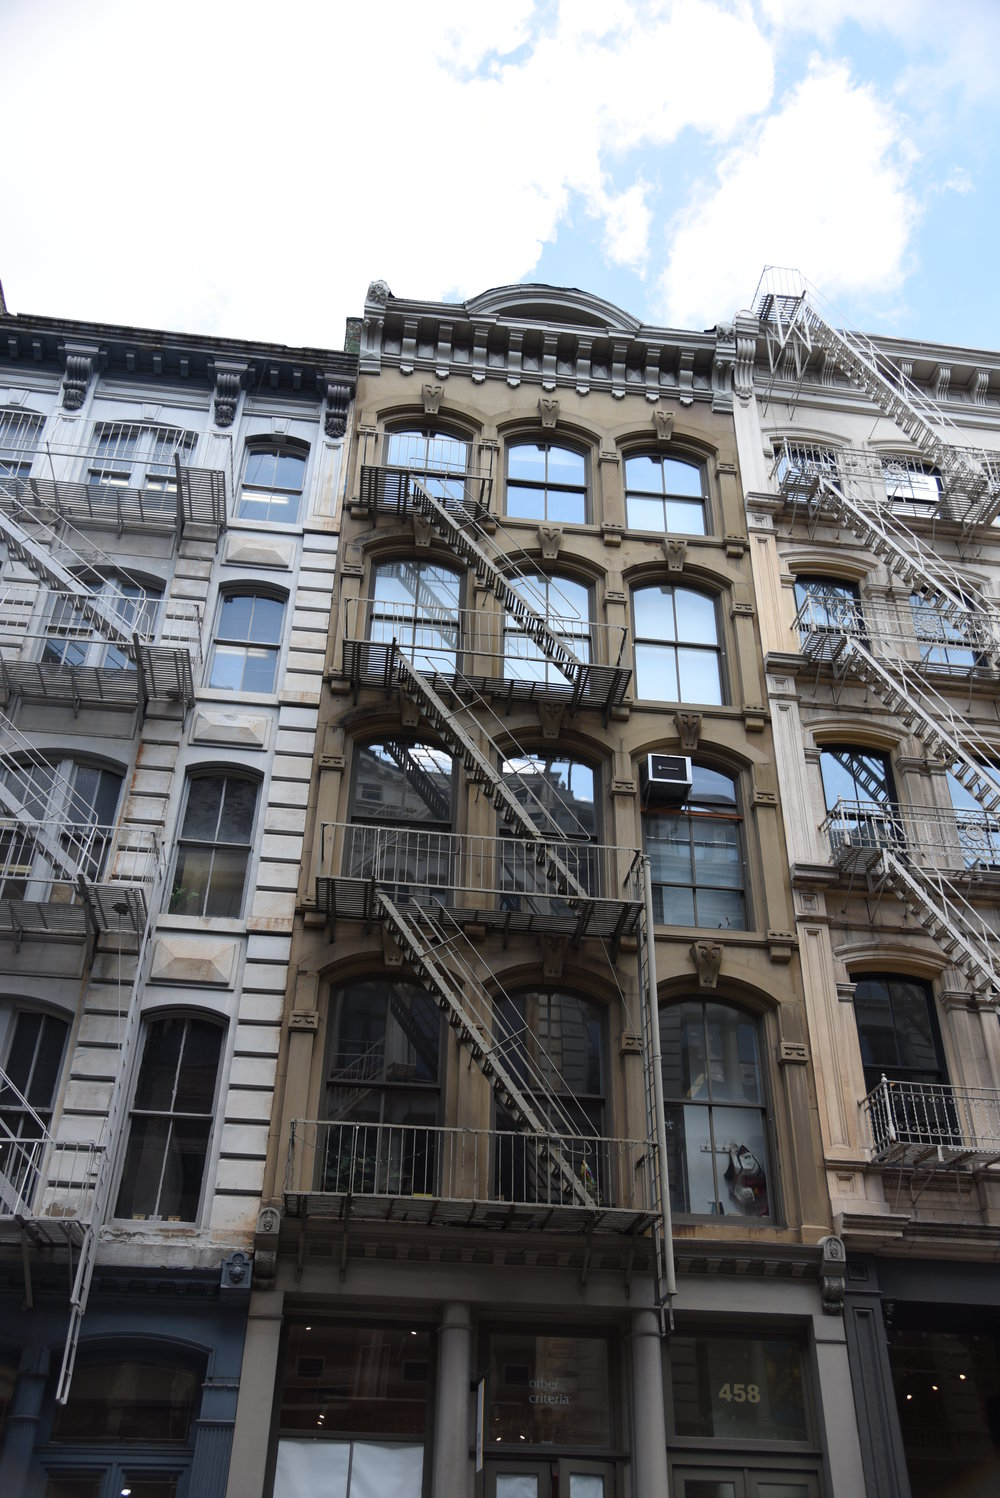 458 Broome Street - Space4Architecture2 story Joint Living-Work Quarters unit